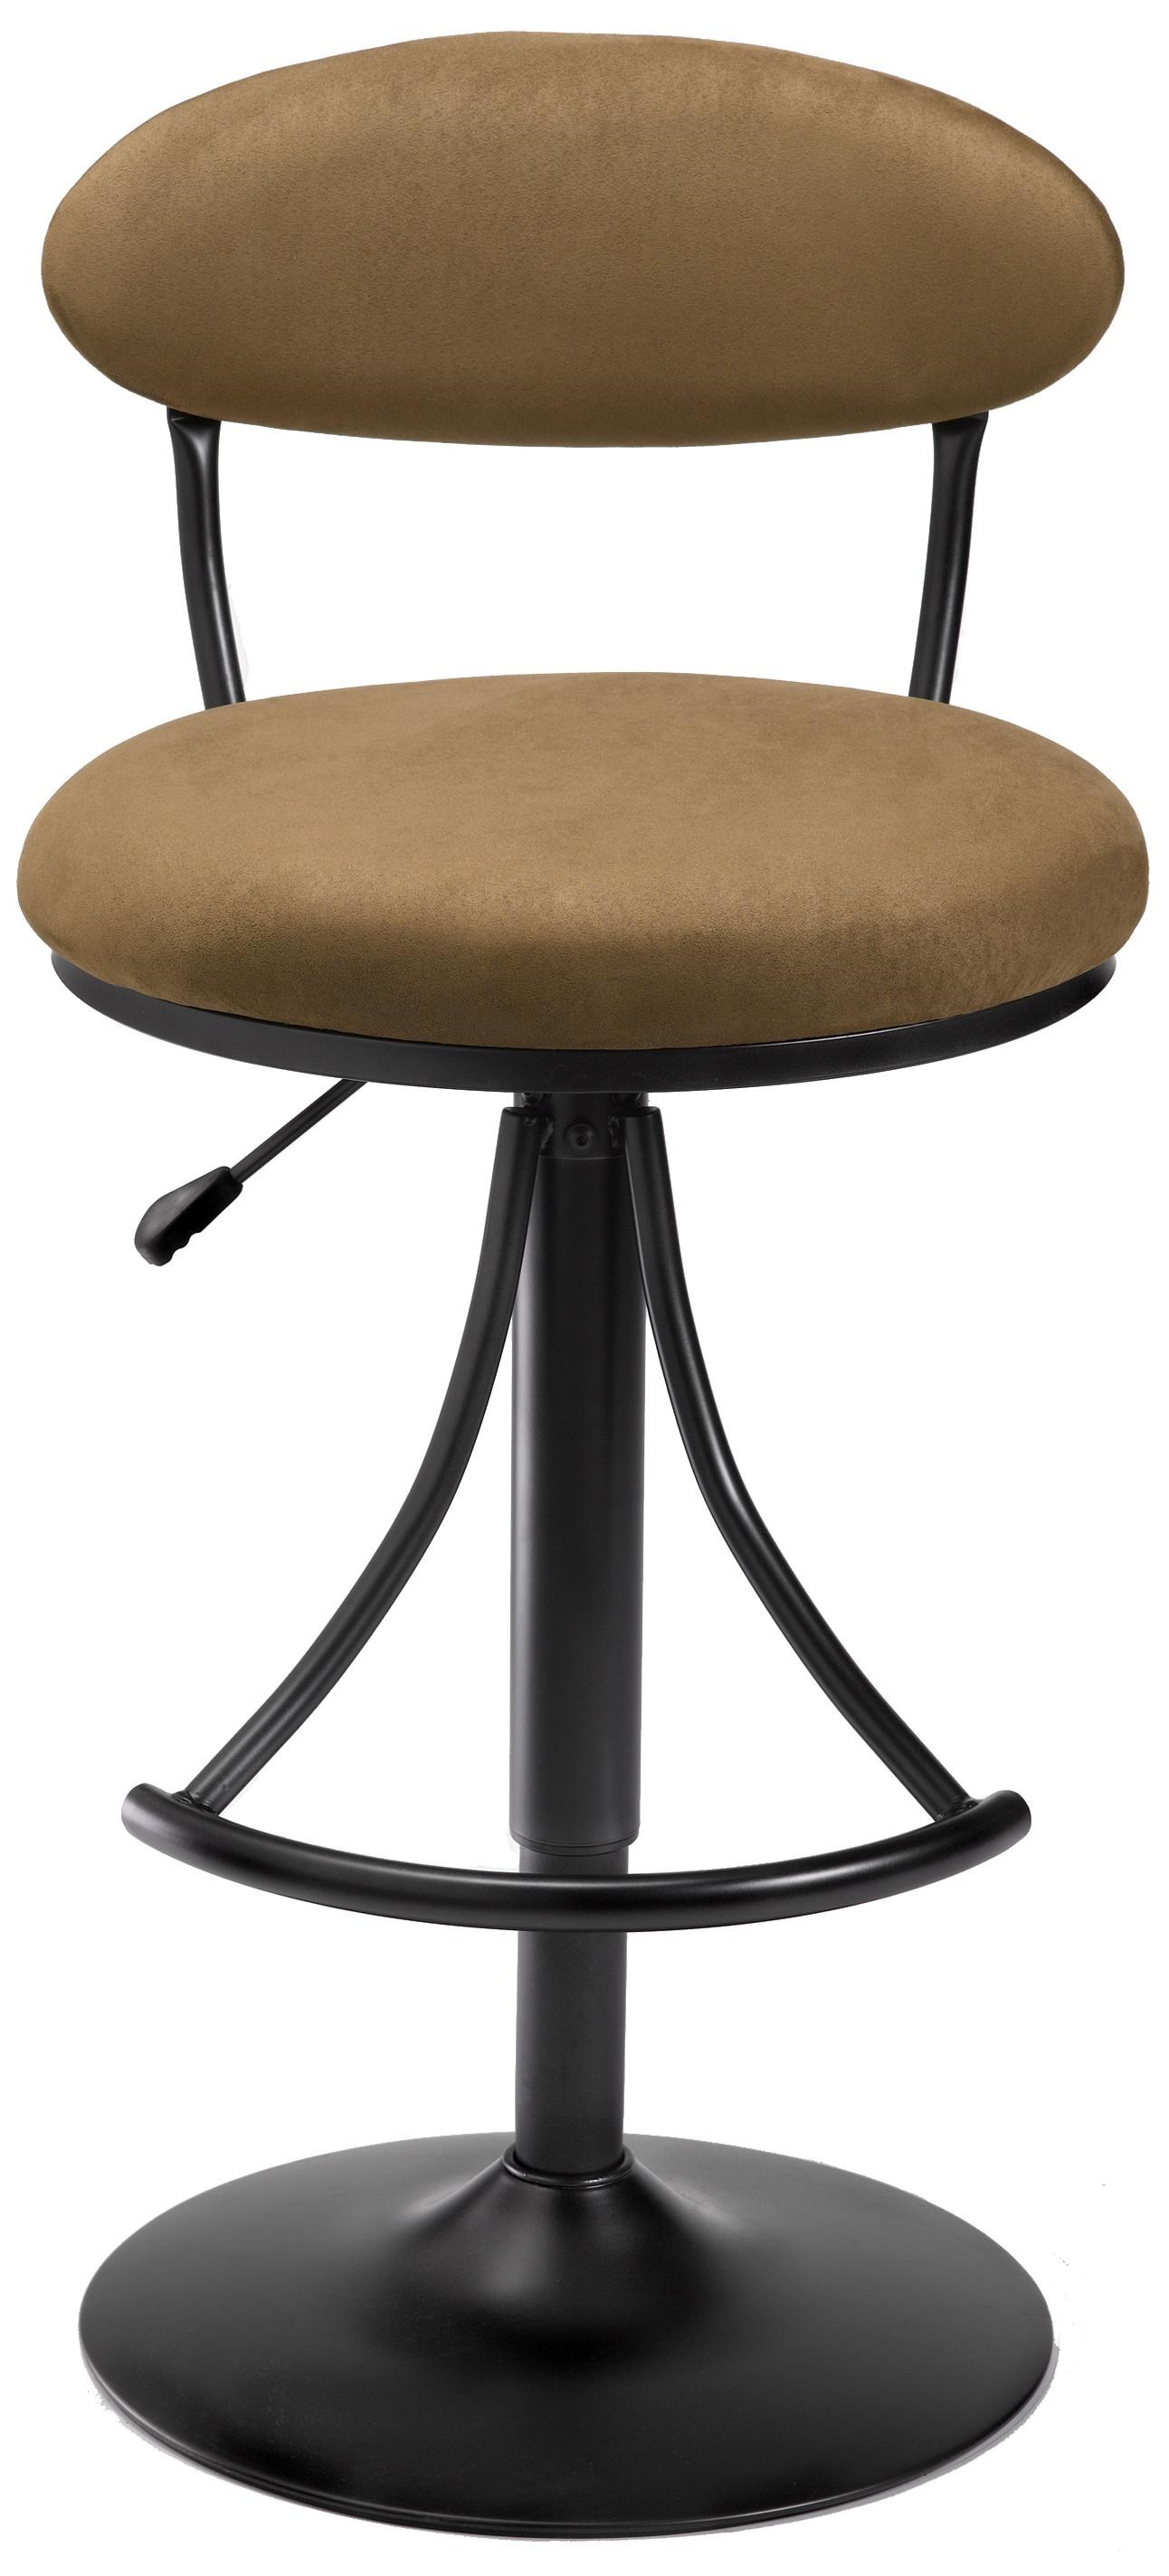 Hillsdale Metal Stools Adjustable Height Venus Swivel